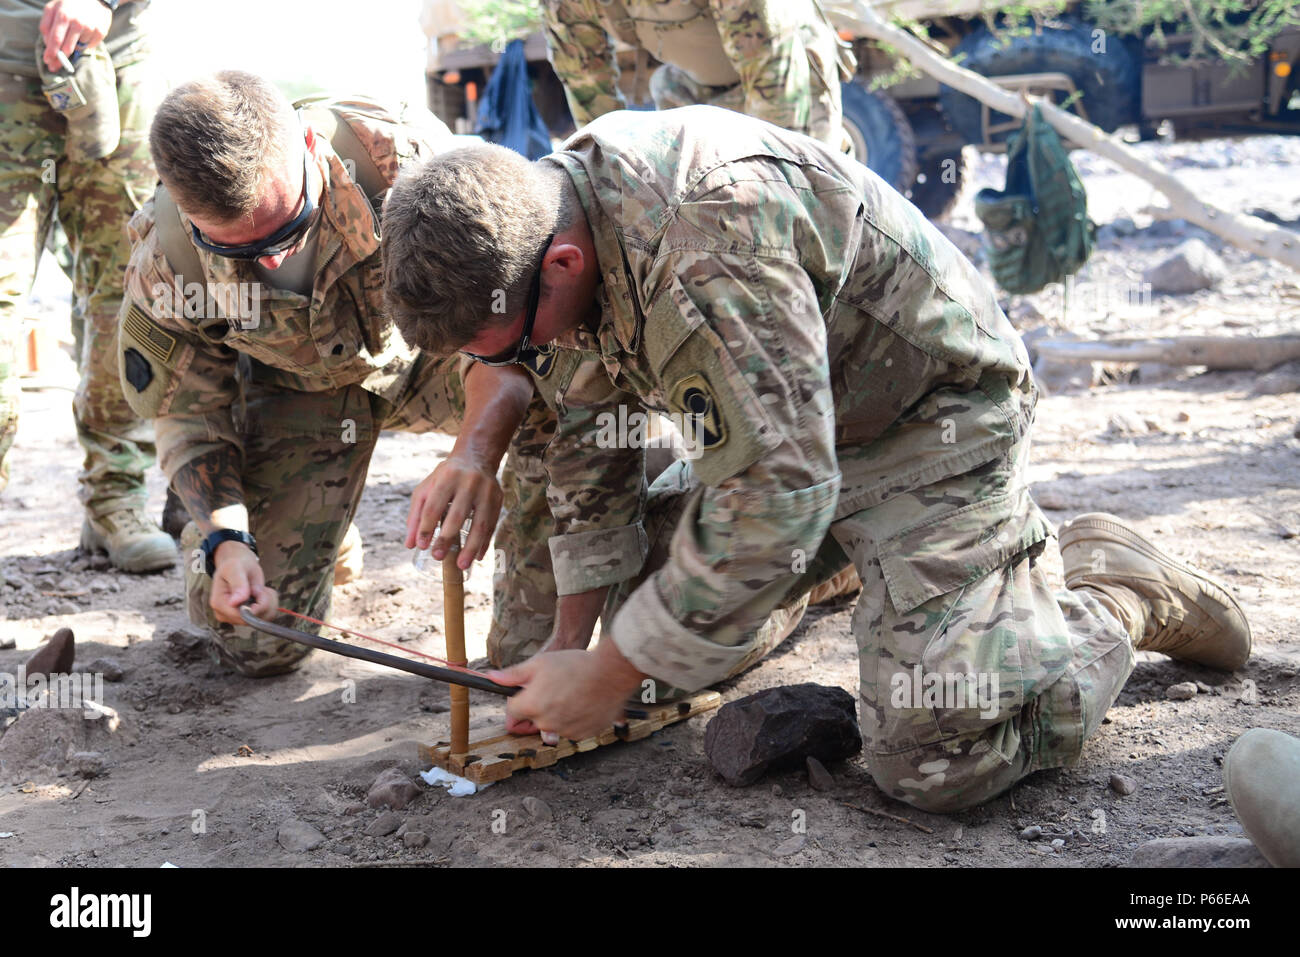 U.S. Army Spc. Zach Dean, left, and Jacob Currie, 2nd Battalion, 124th Infantry Regiment, use a stick, bow and paper to make a fire during the French Desert Survival Course, May 5, 2016 at Arta Plage, Djibouti. During the course, U.S. forces also learned how to make fire from mundane items like batteries, flint, bullets and steel wool. (U.S. Air Force photo by Senior Airman Benjamin Raughton/Released) - Stock Image